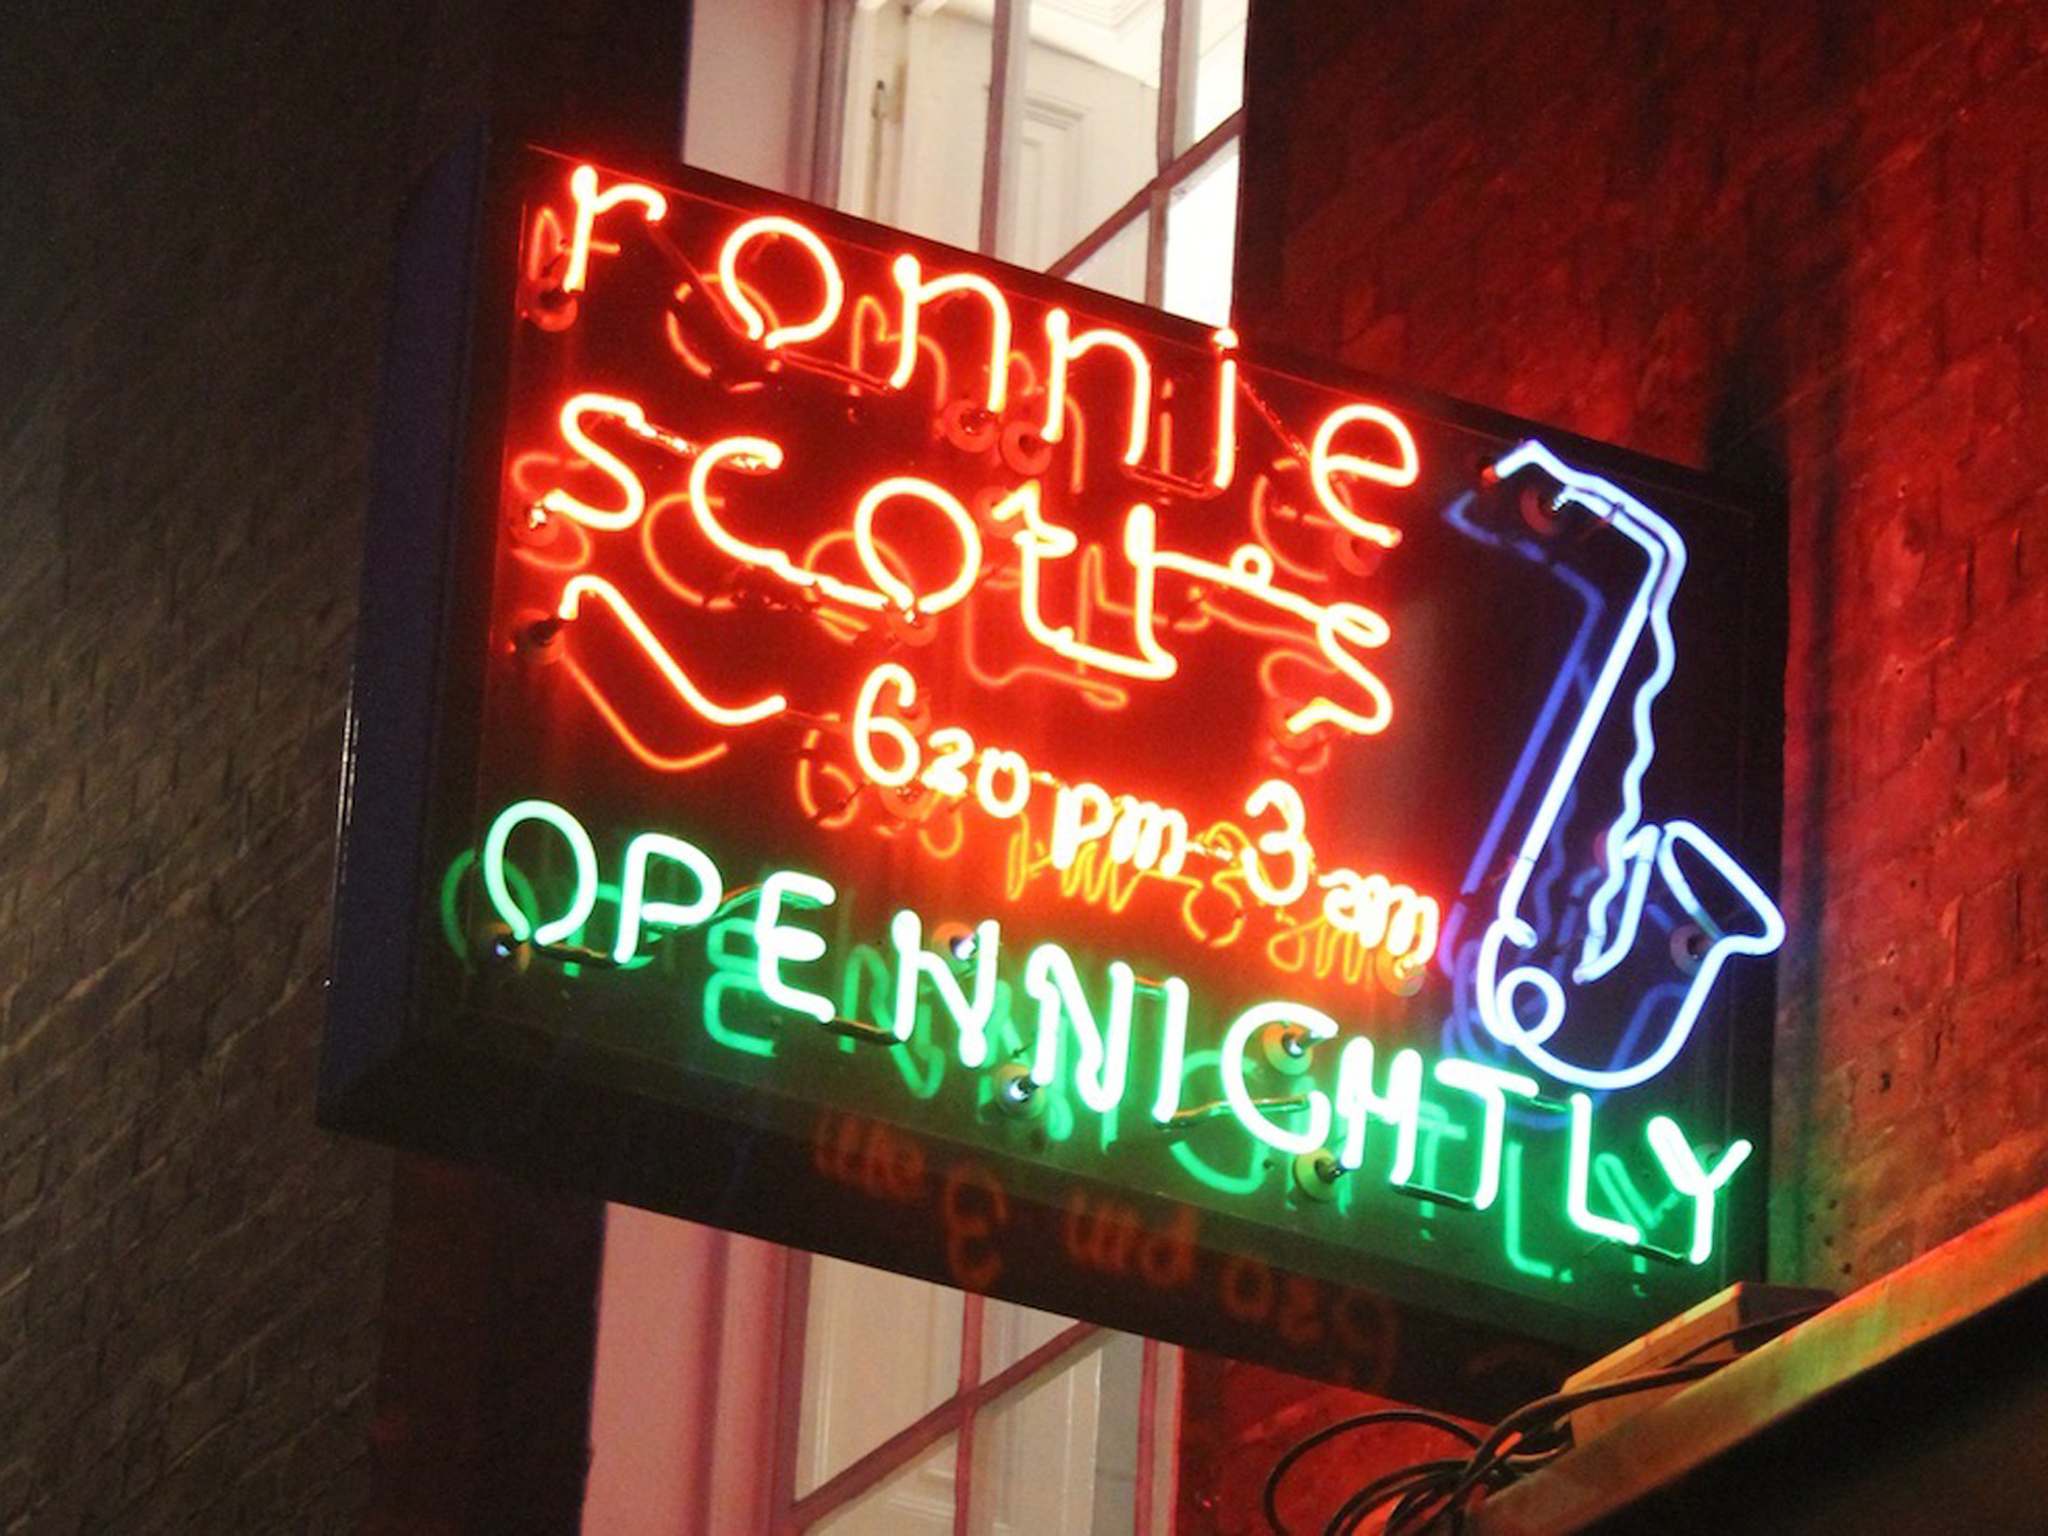 Ronnie Scott's